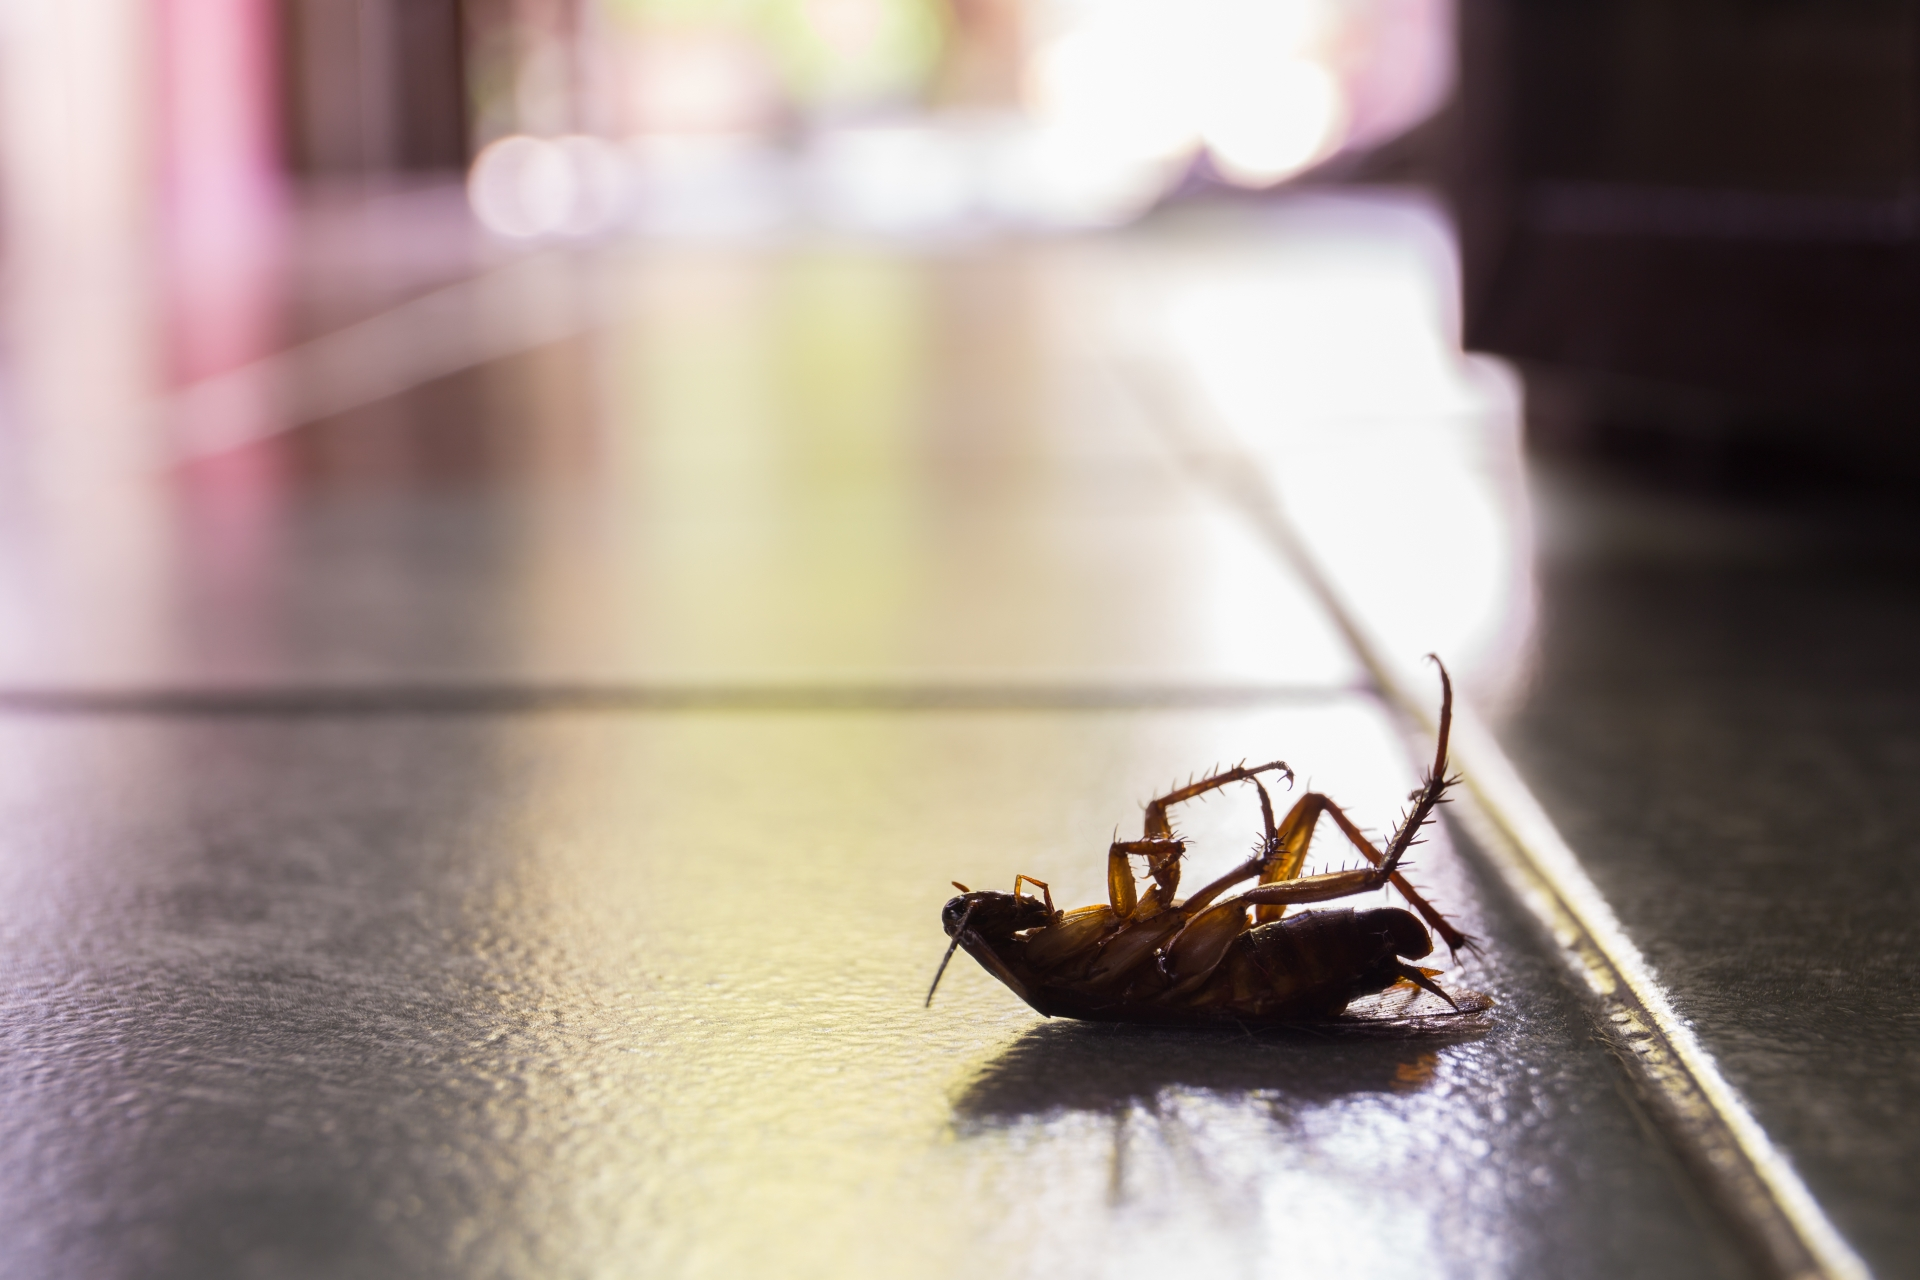 Cockroach Control, Pest Control in Notting Hill, W11. Call Now 020 8166 9746